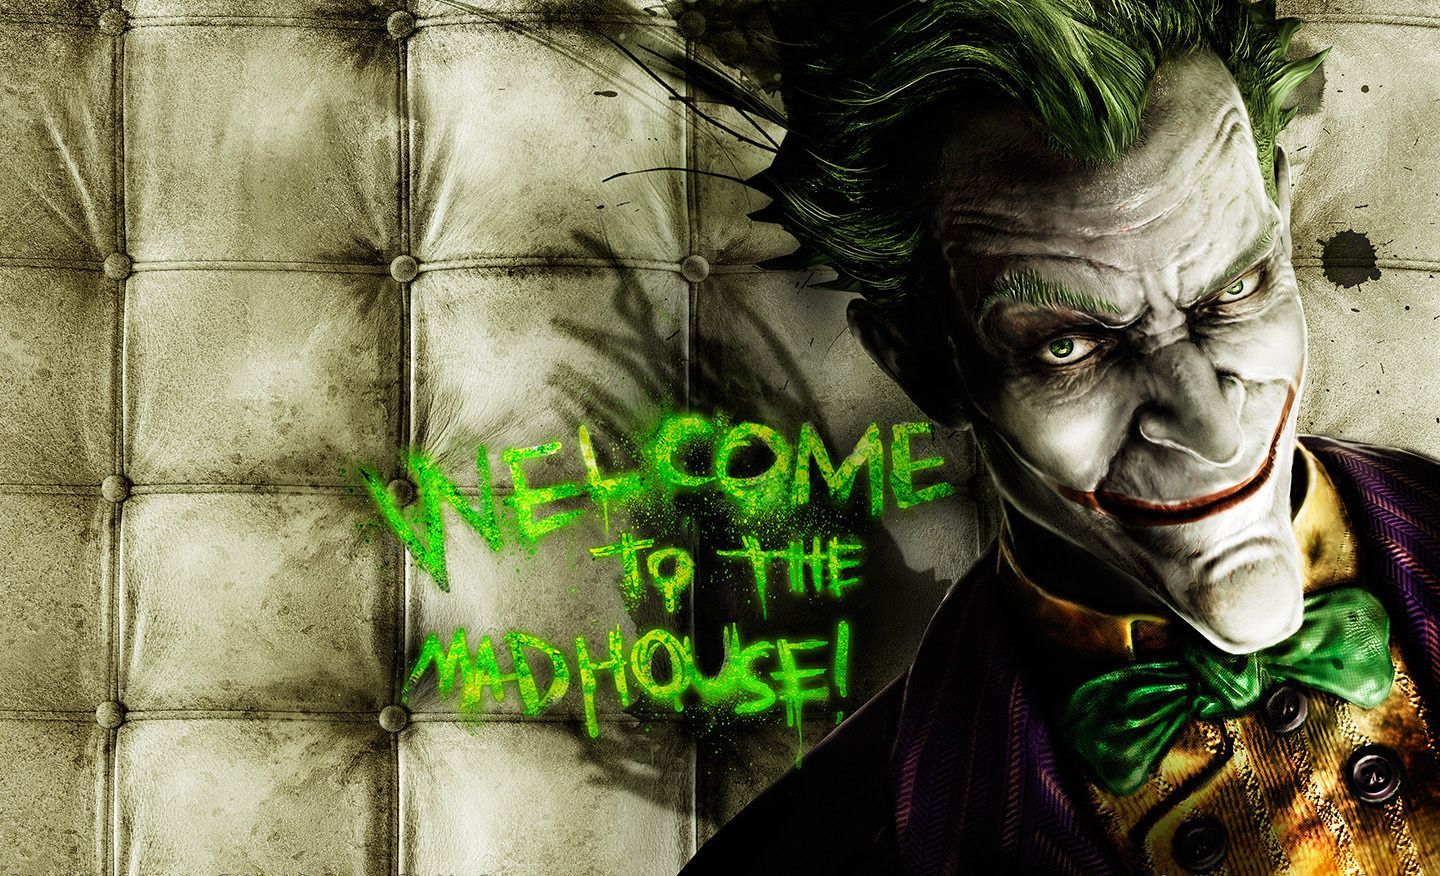 High Definition Mobile Phone And Desktop Wallpapers Joker Hd Wallpaper Joker Wallpapers Joker Images